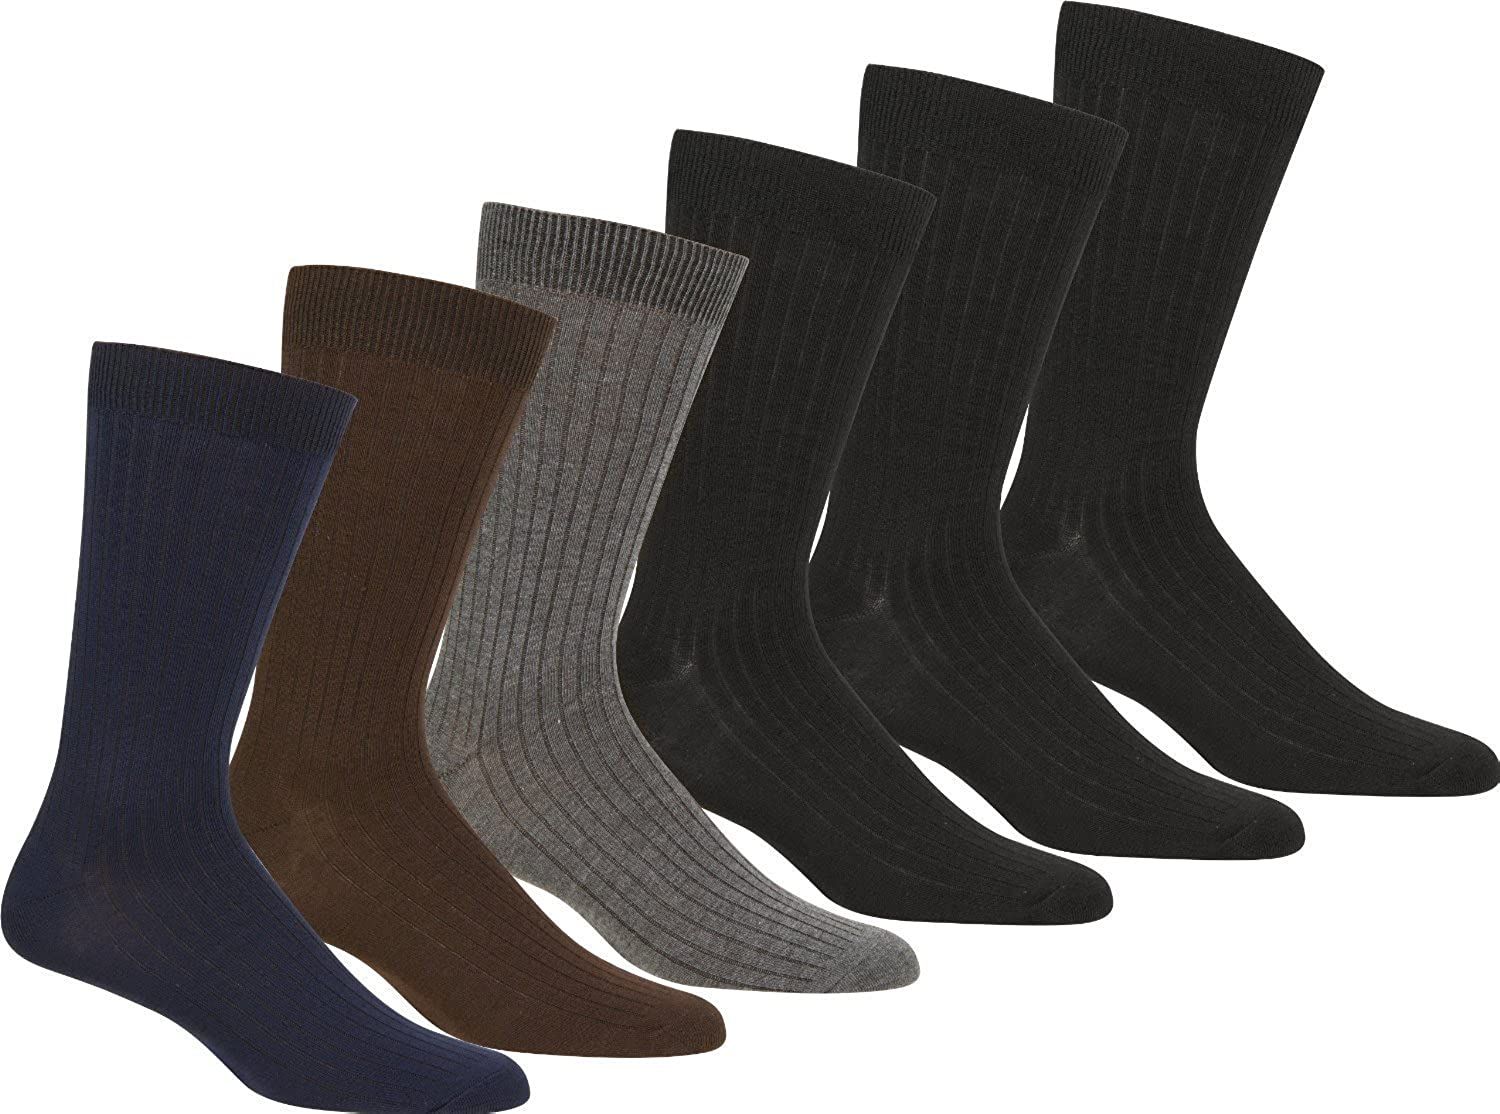 Womens Cotton Blend Ribbed Dress Socks Value Assorted 6-Pack